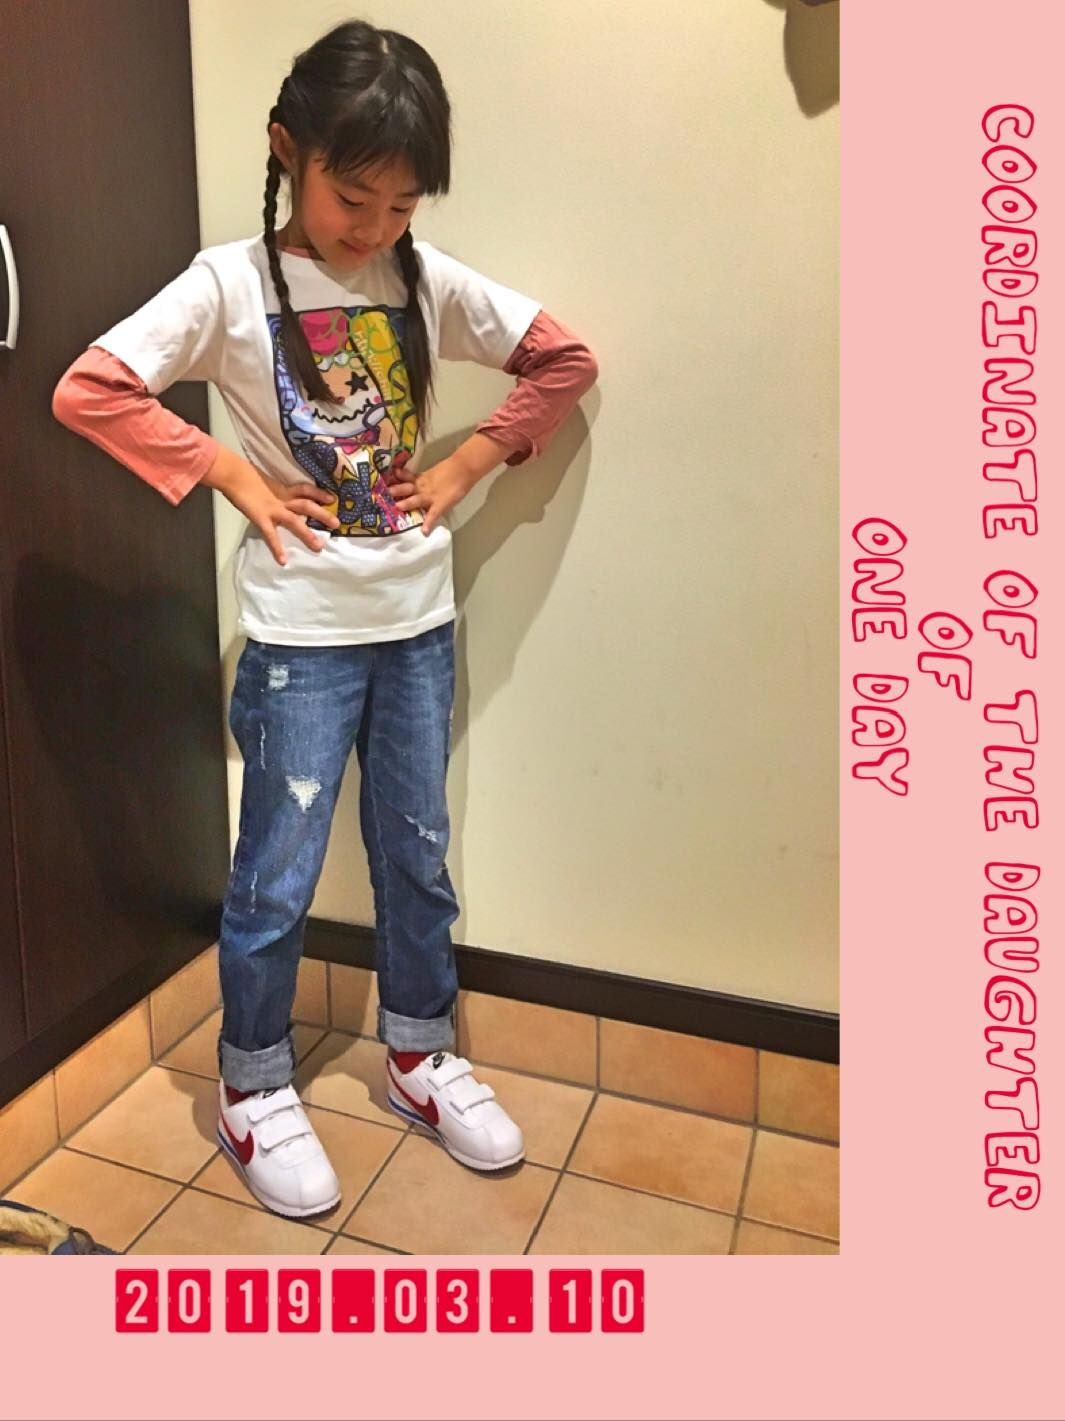 ・